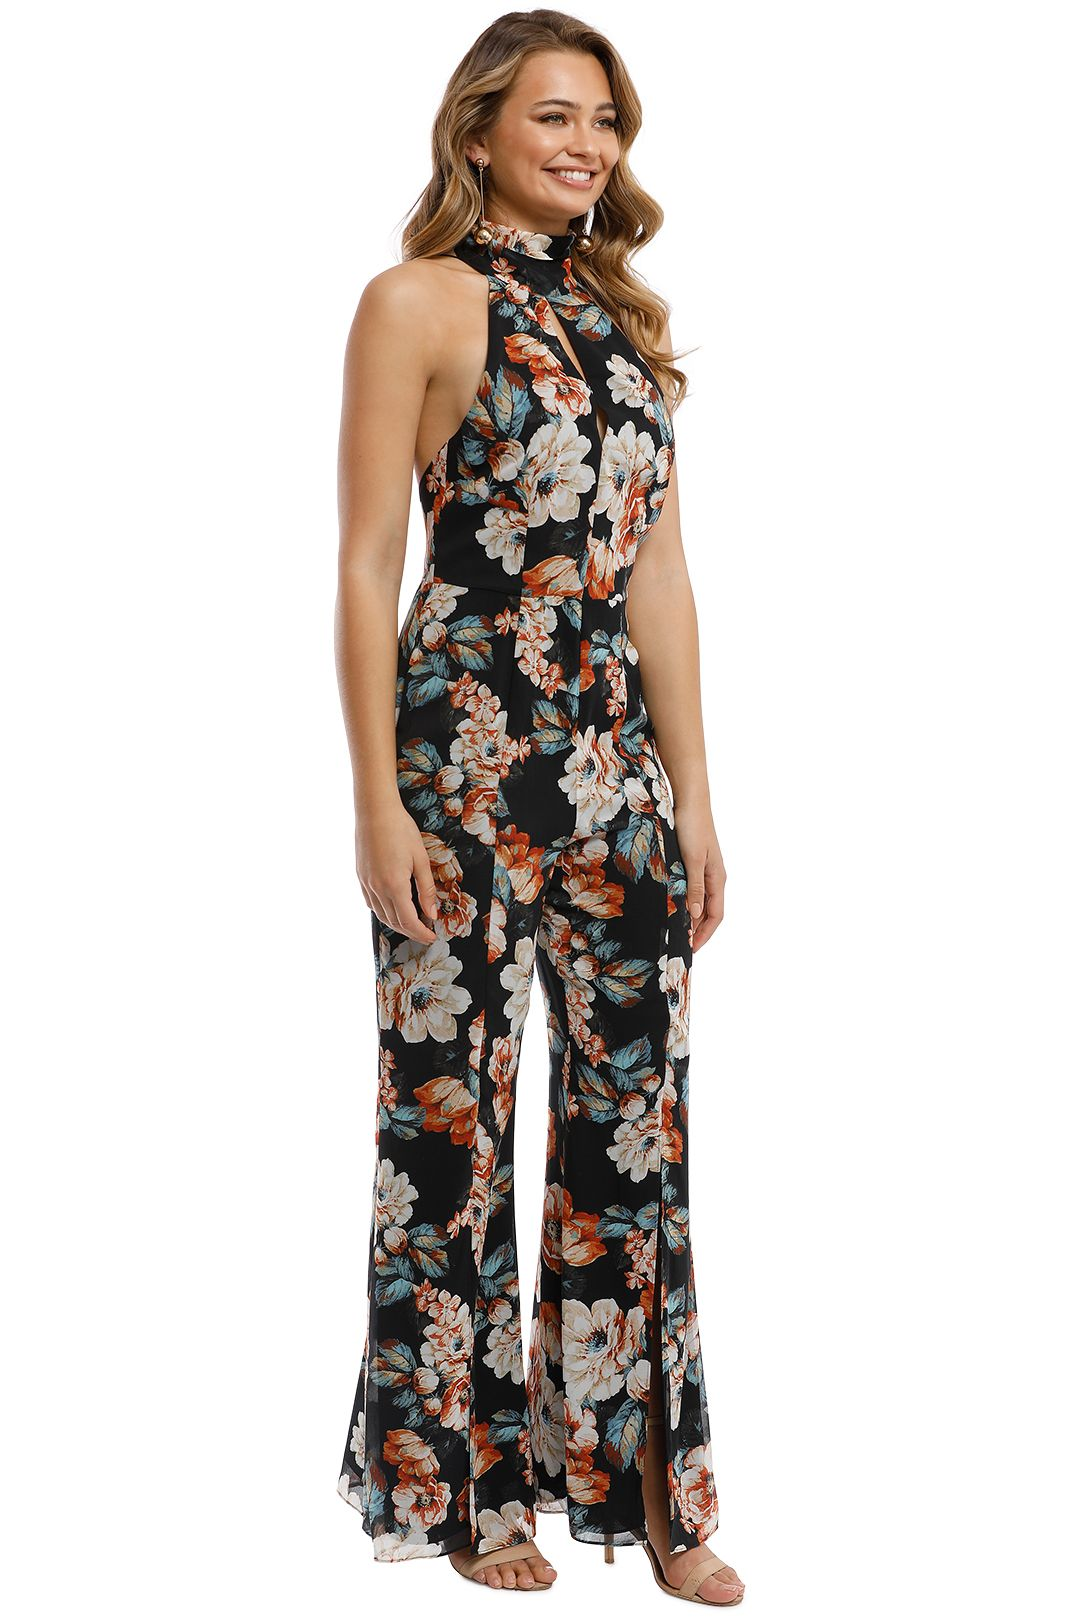 Nicholas - Lola Floral Jumpsuit - Black Multi - Side